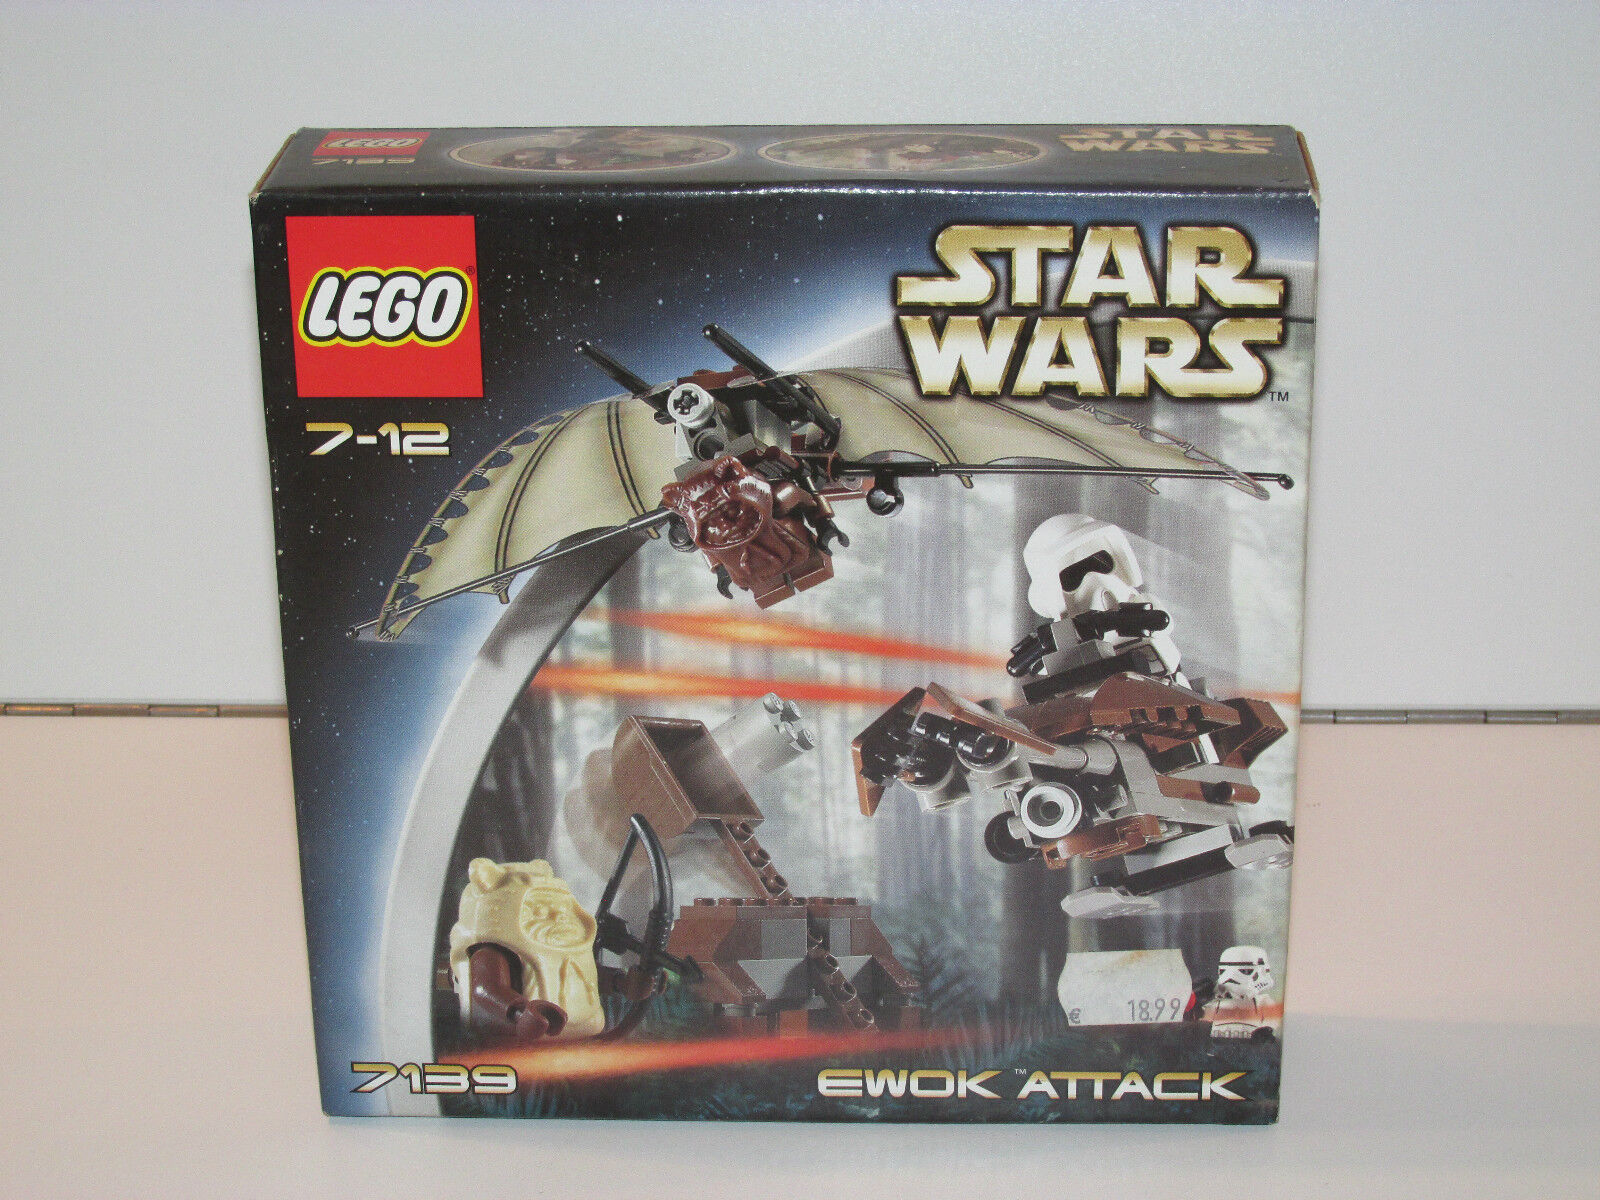 LEGO STAR WARS 7139 EWOK ATTACK MISB SEALED BOX NRFB EWOKS SPEEDER BIKE